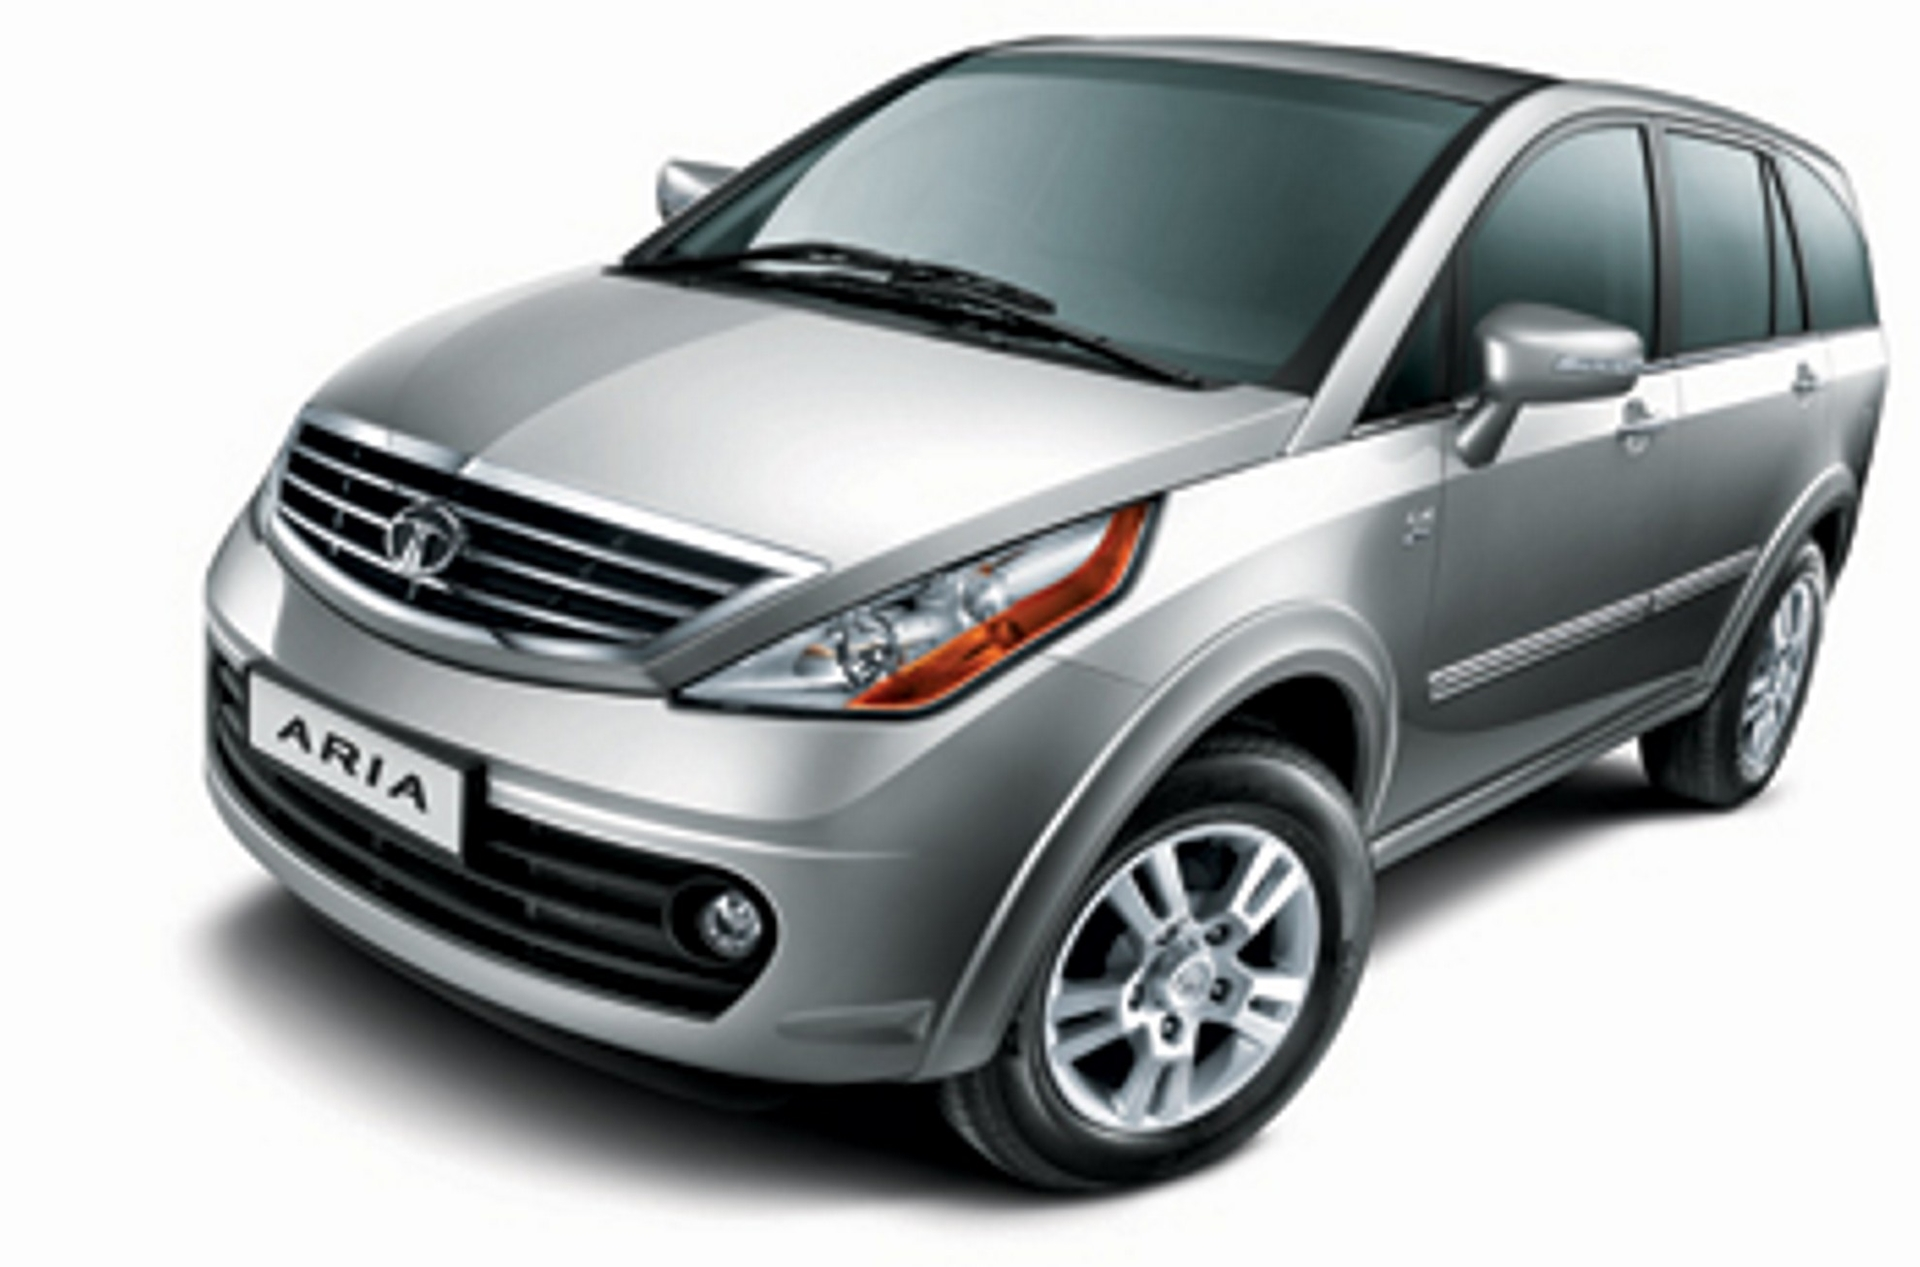 The New Tata Aria Pure LX launched at a stunning price!